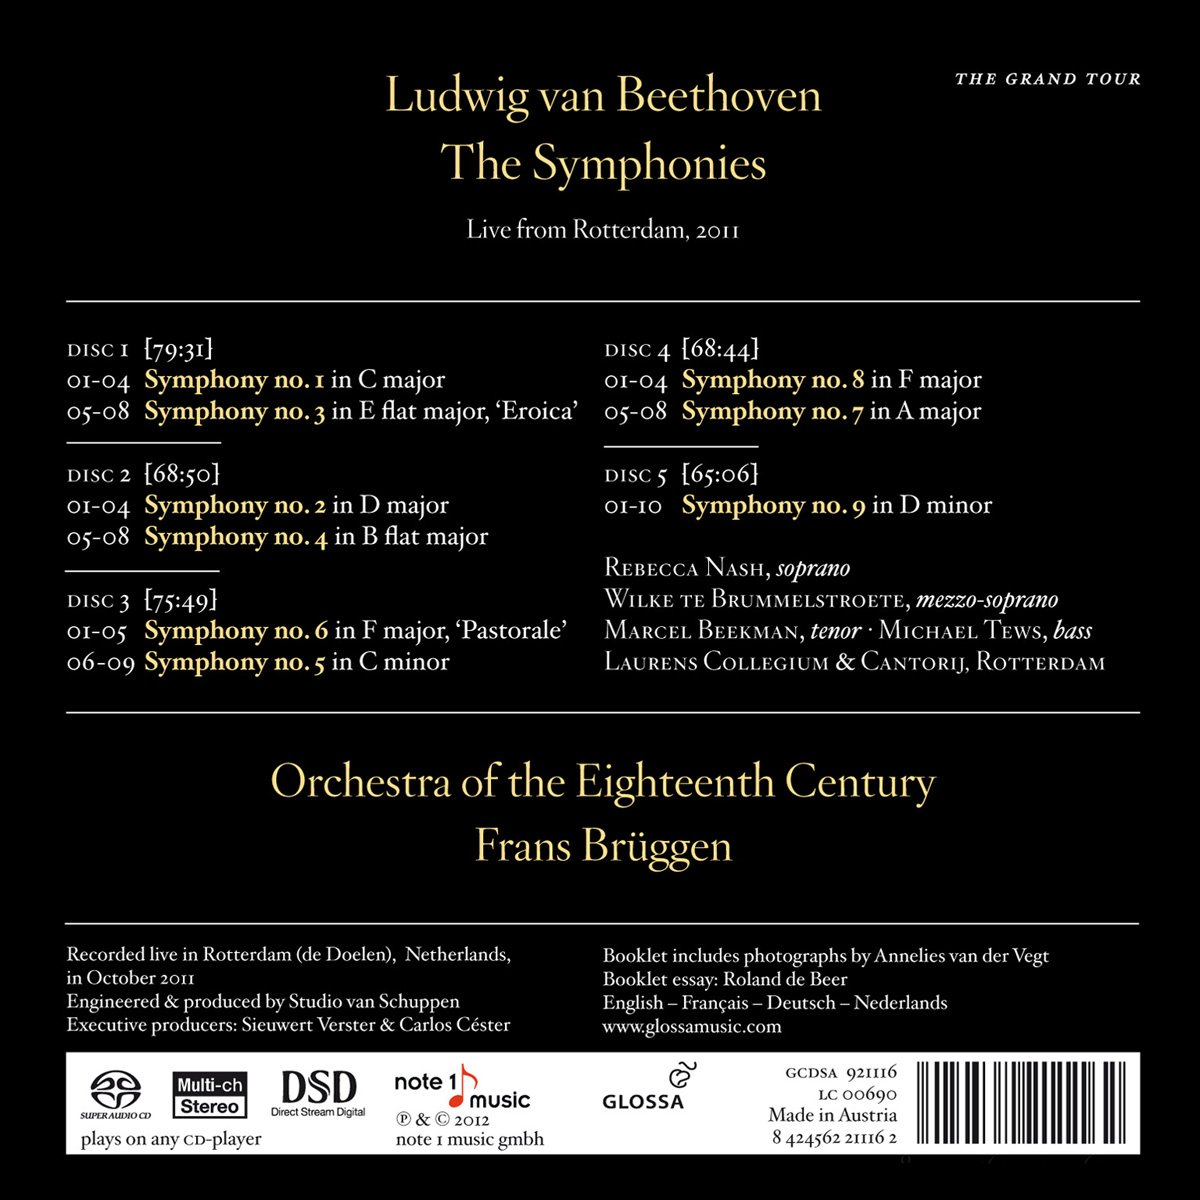 beethoven the symphonies live in rotterdam amazon co uk beethoven the symphonies live in rotterdam 2011 amazon co uk music